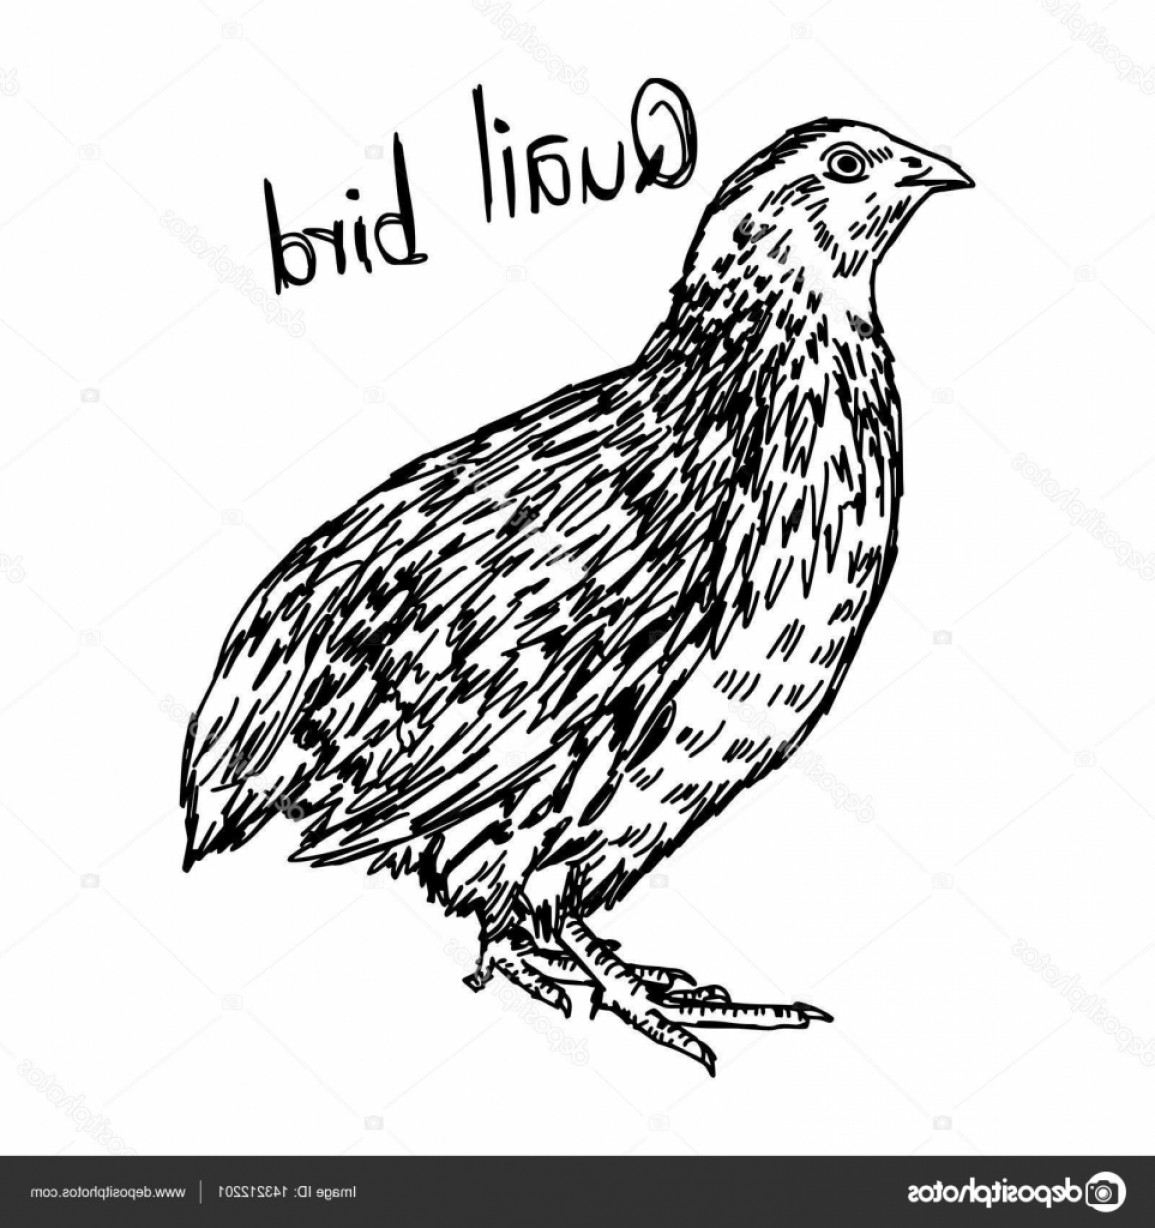 Quail Vector Art: Stock Illustration Quail Vector Illustration Sketch Hand